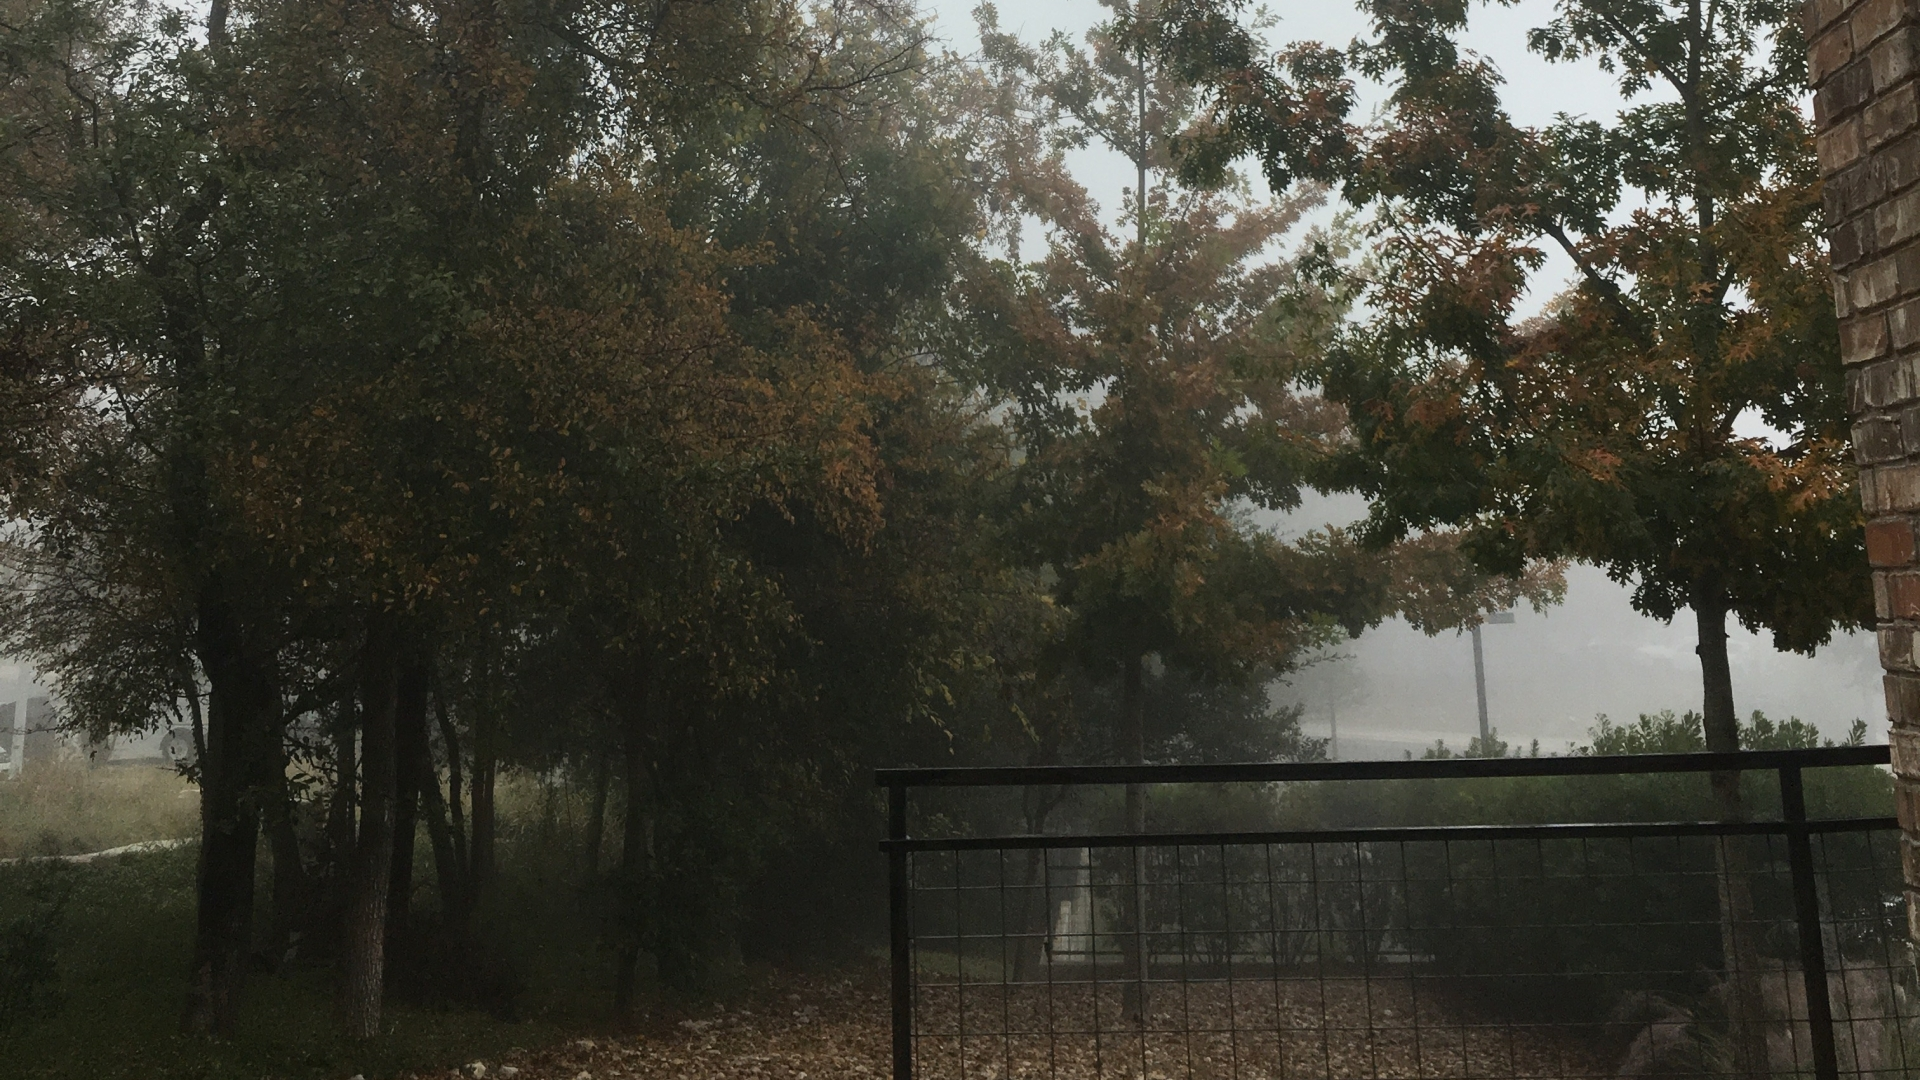 a shot of a foggy day with trees and orange leaves on the ground